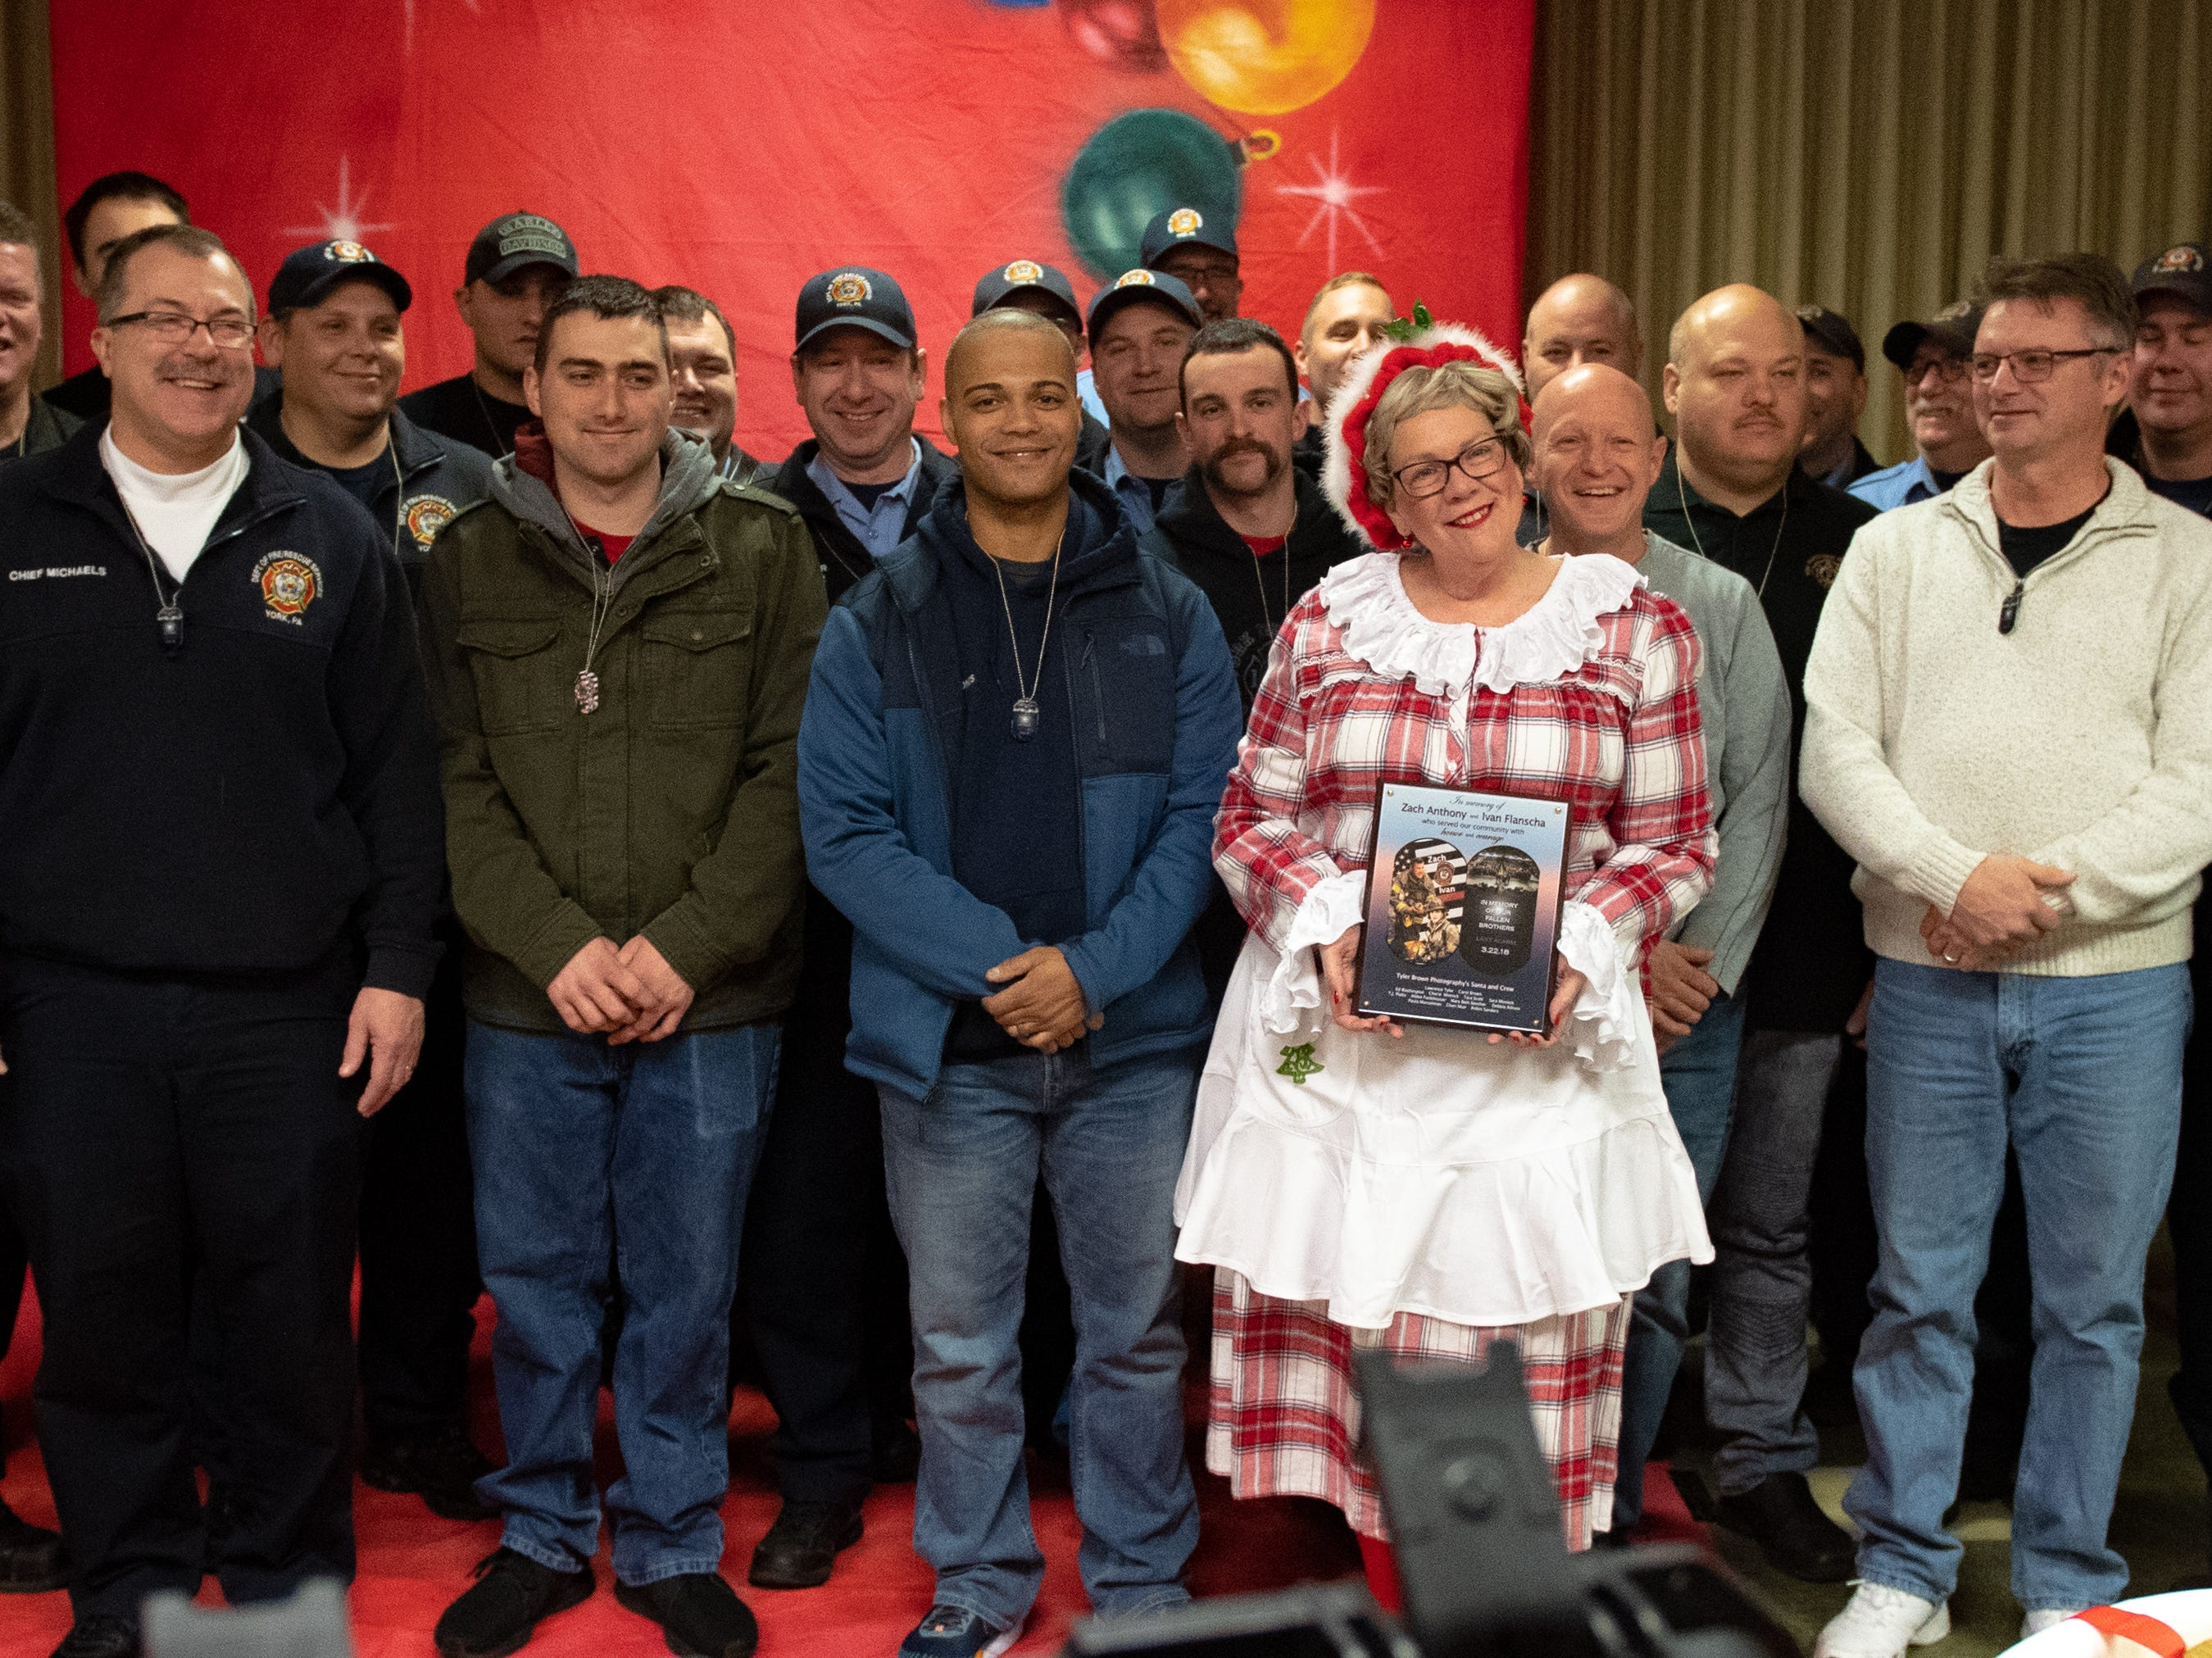 After all firefighters received their dog tags, Everyone posed for a picture, December 13, 2018.